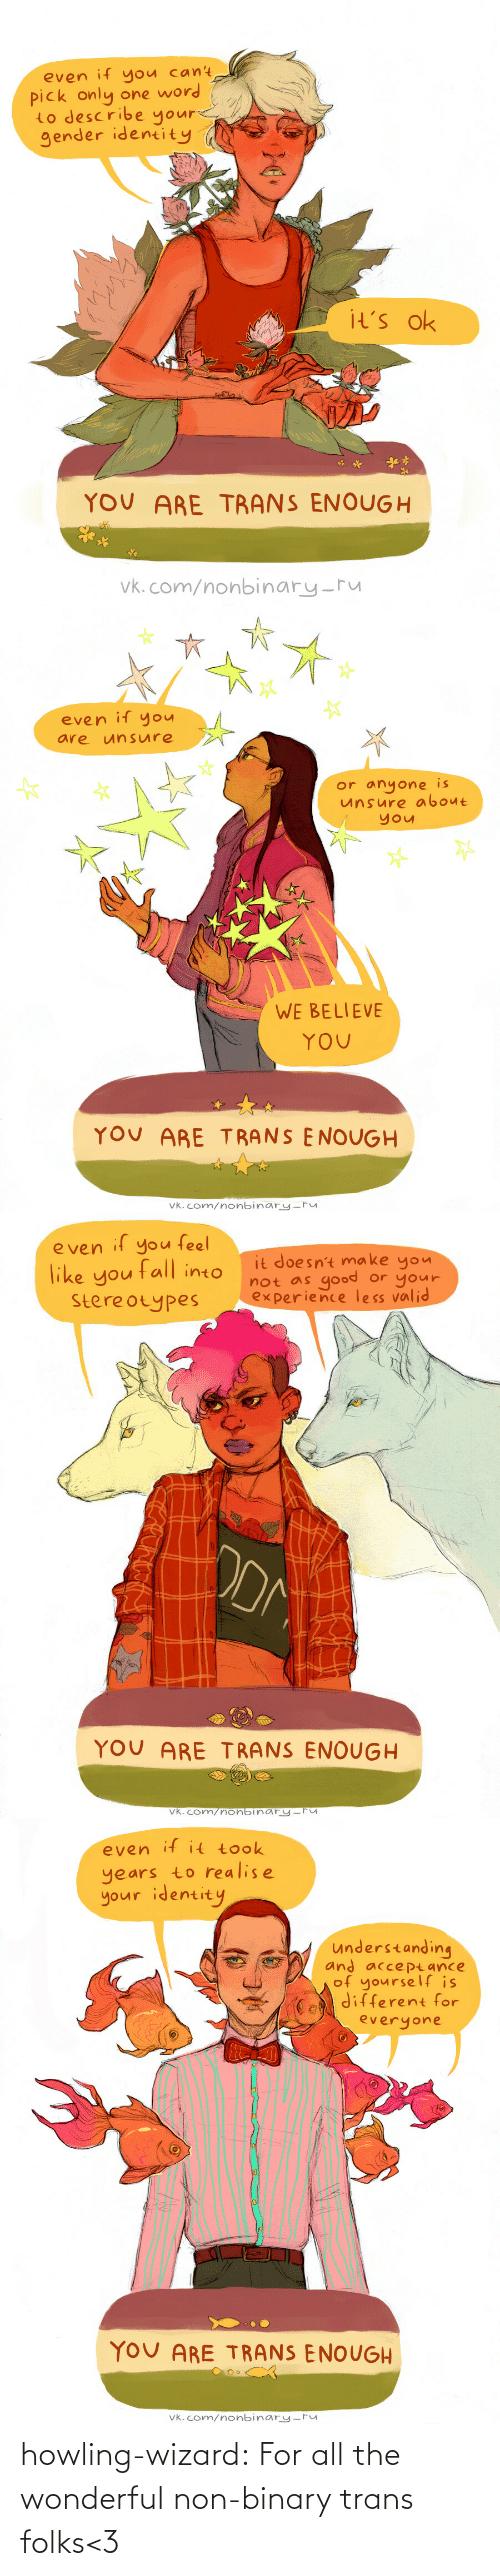 wizard: howling-wizard: For all the wonderful non-binary trans folks<3